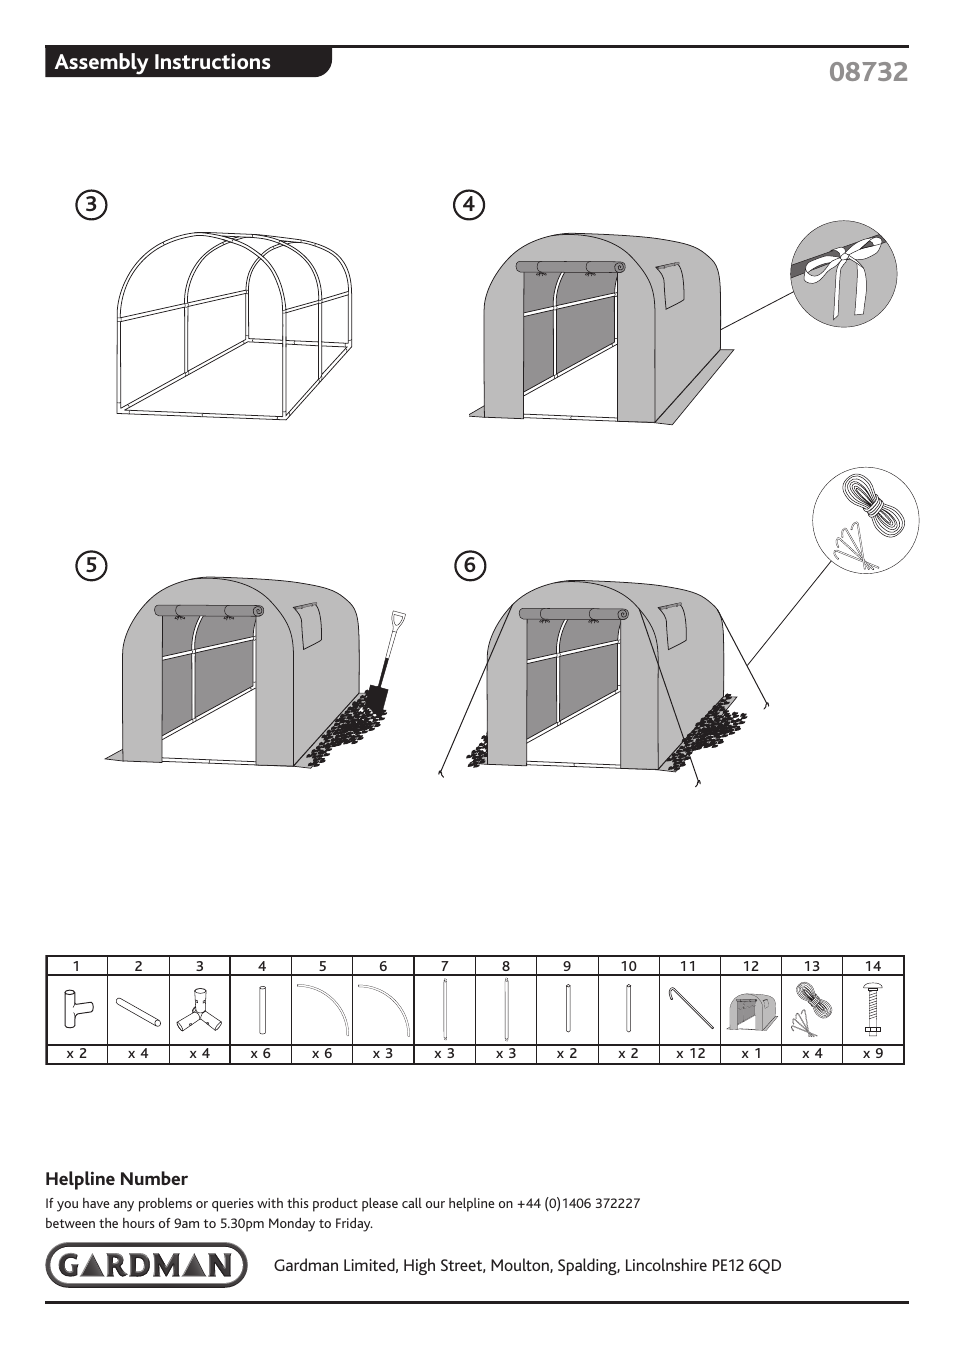 Assembly Instructions Gardman Polytunnel User Manual Page 2 2